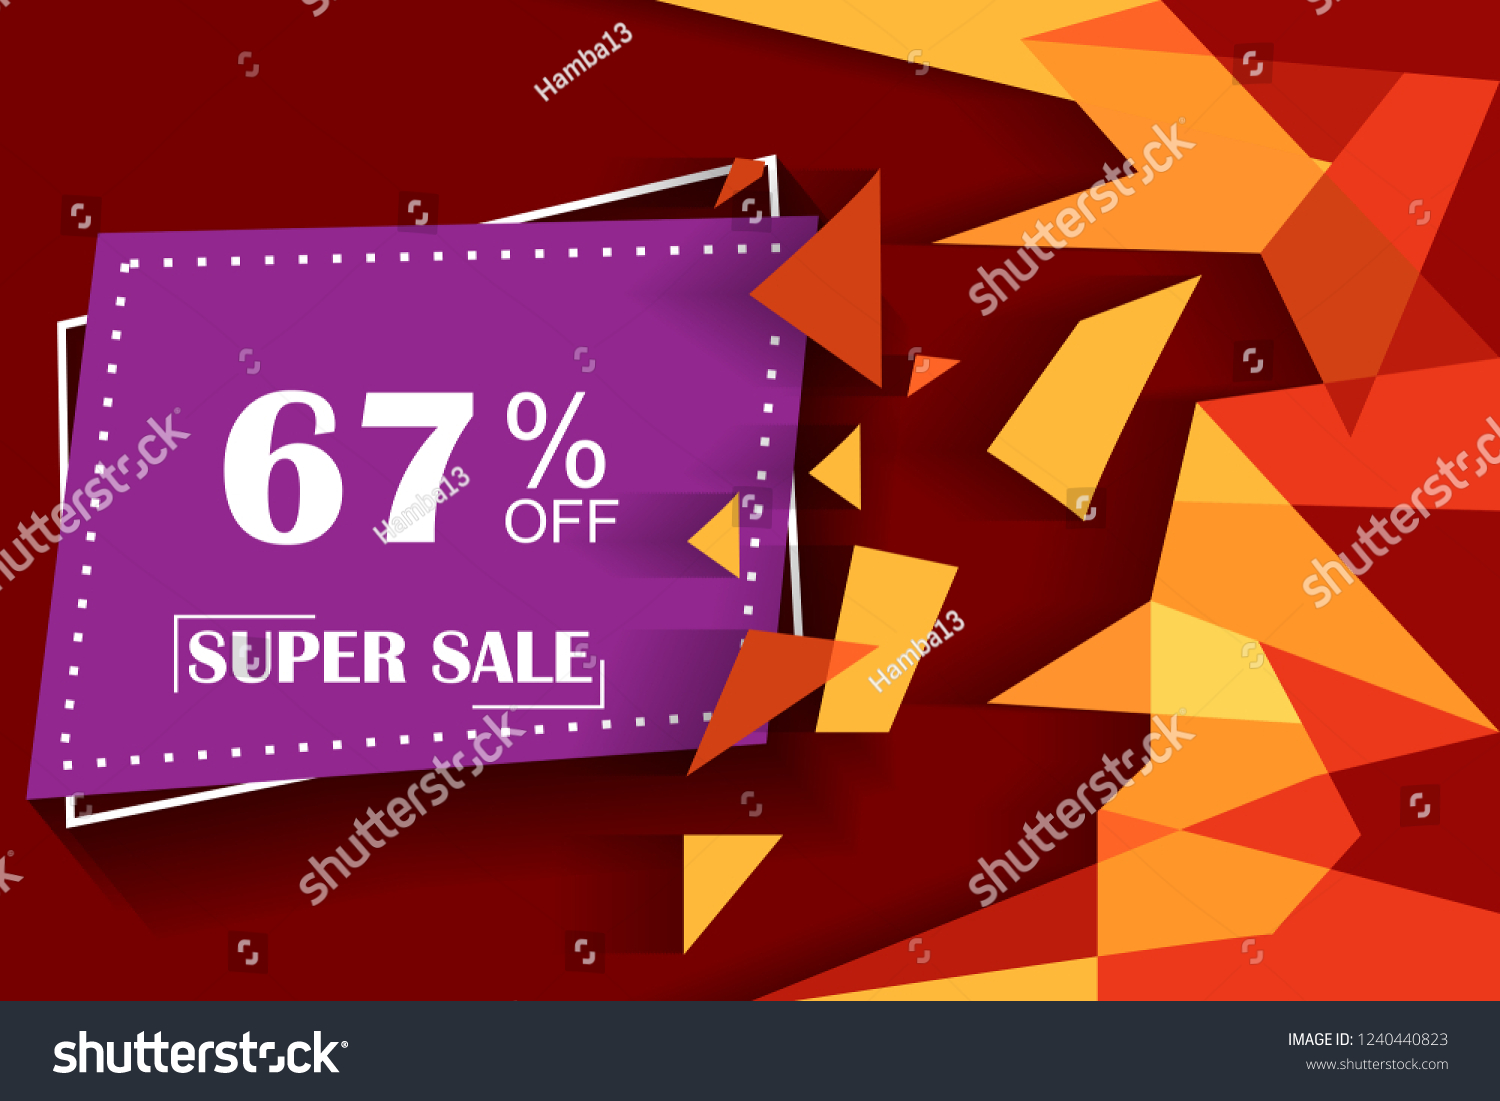 4020fdc93e3e 67 Off Discount Promotion Sale Sale Stock Vector (Royalty Free ...